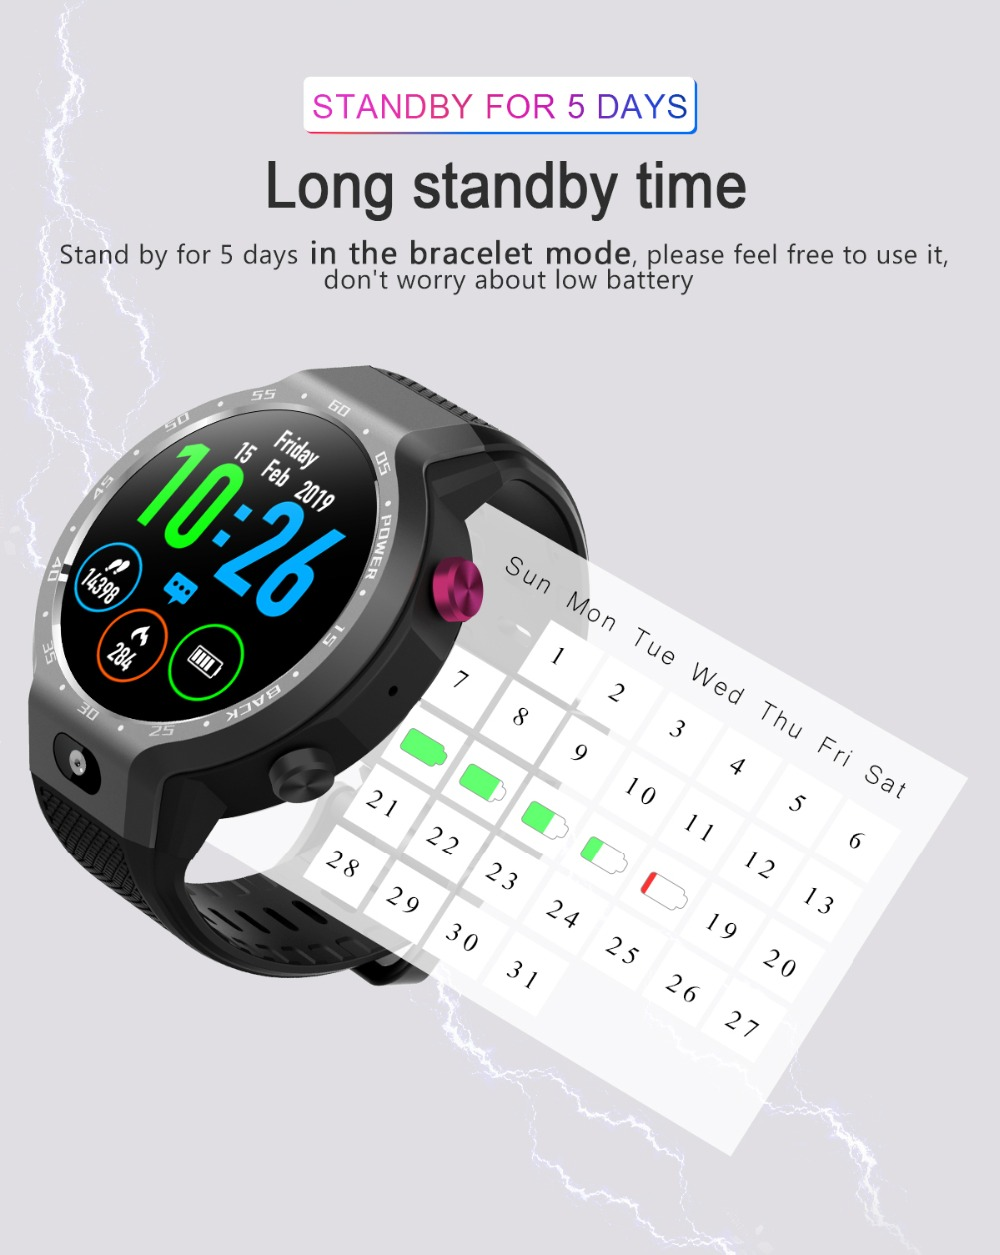 TORNTISC Z30 Dual Systems 4G Smart Watch phone Android 7.1 5MP Front Camera 600Mah Battery Support GPS WIFI Heart Rate Smartwatch PK LEM9 Presale (12)